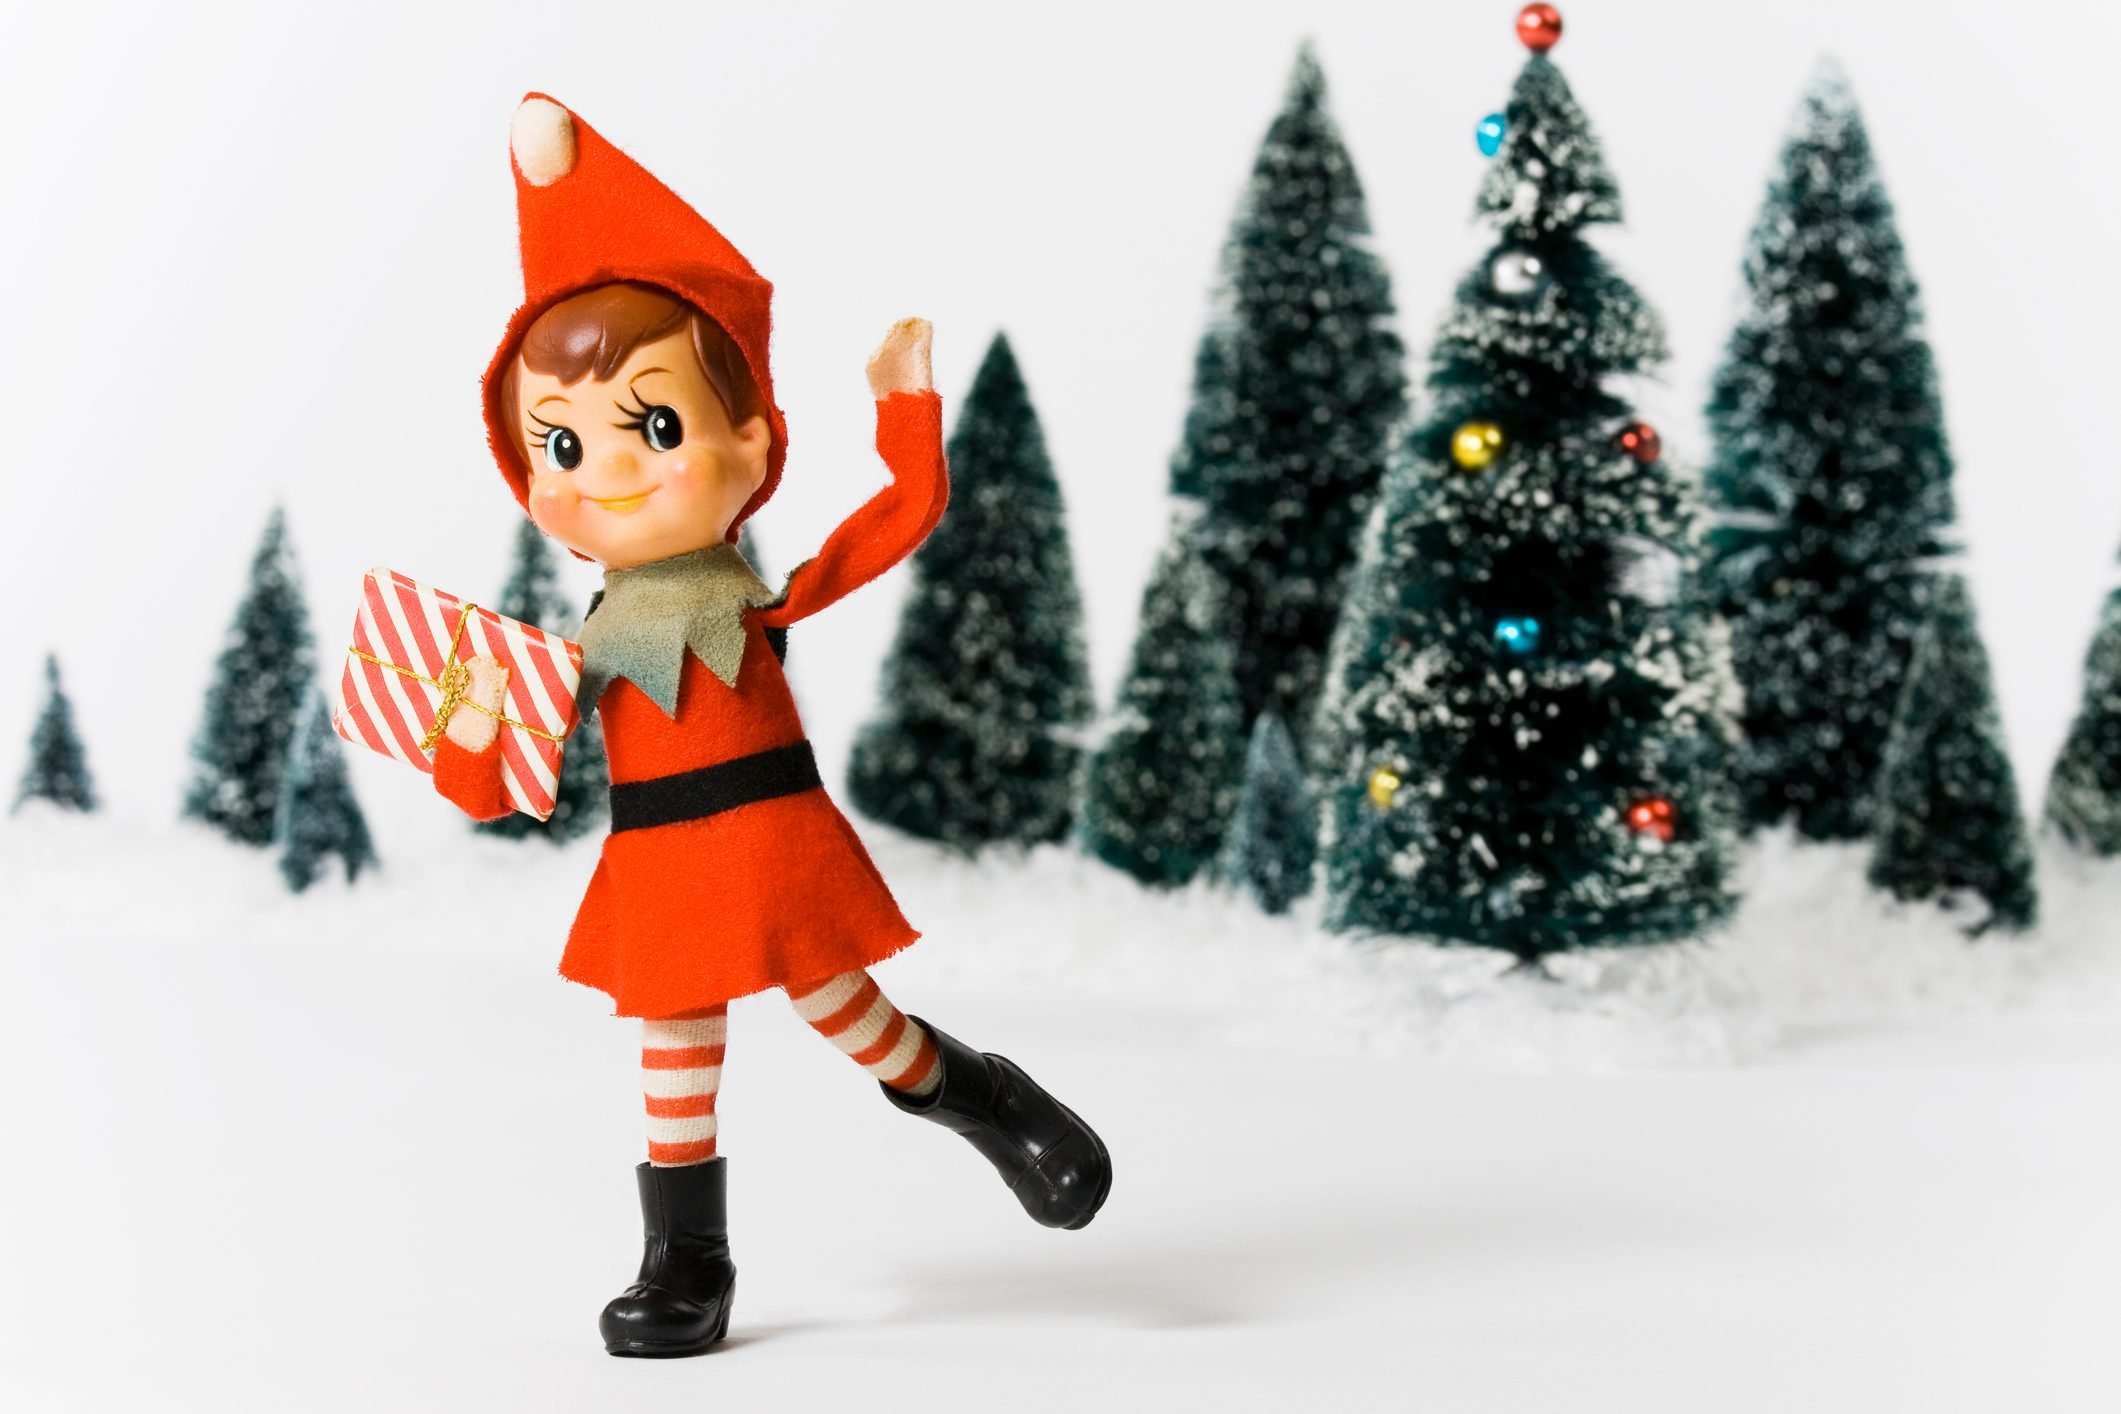 Vintage Christmas doll in front of Christmas trees